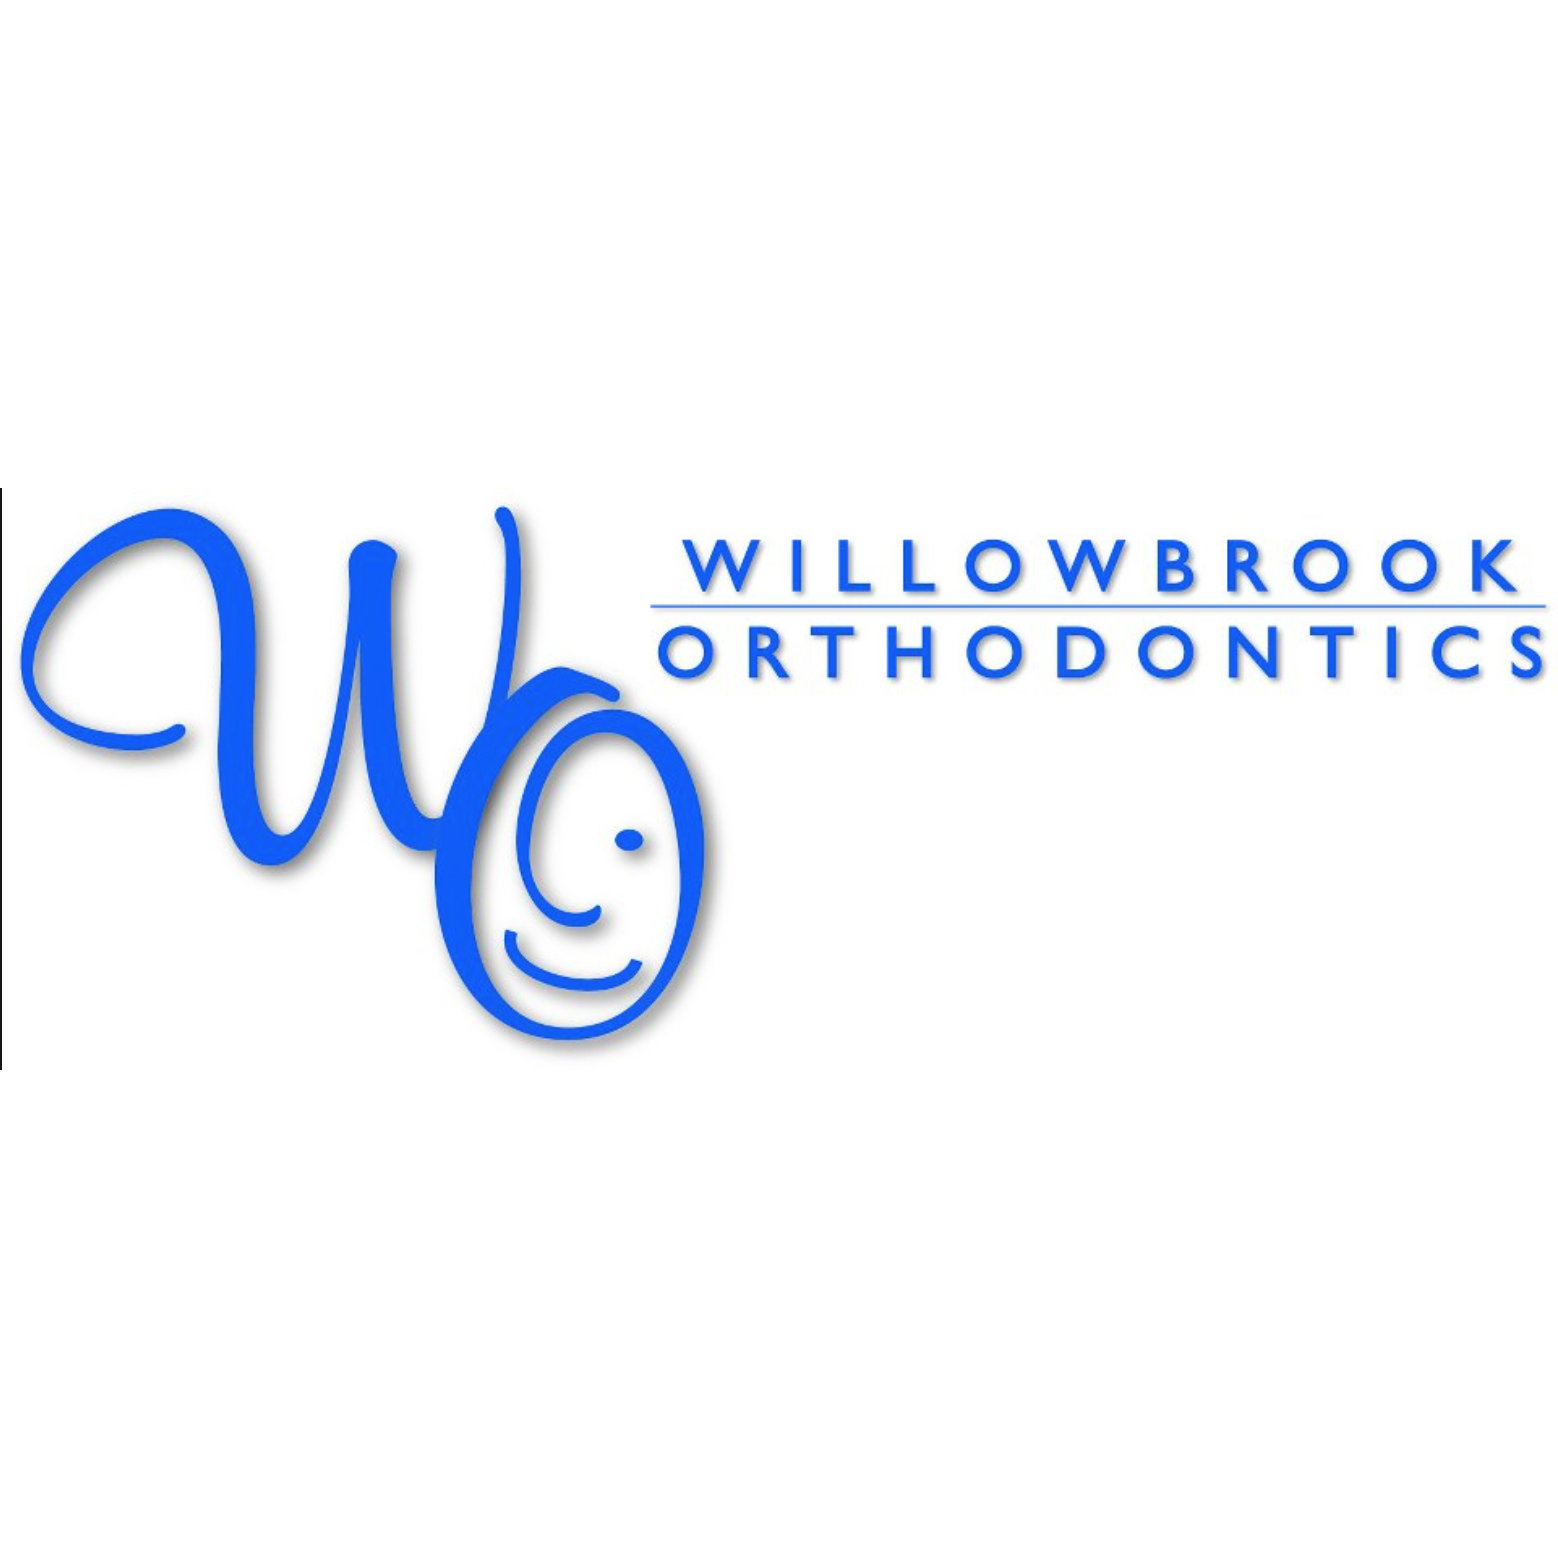 Willowbrook Orthodontics